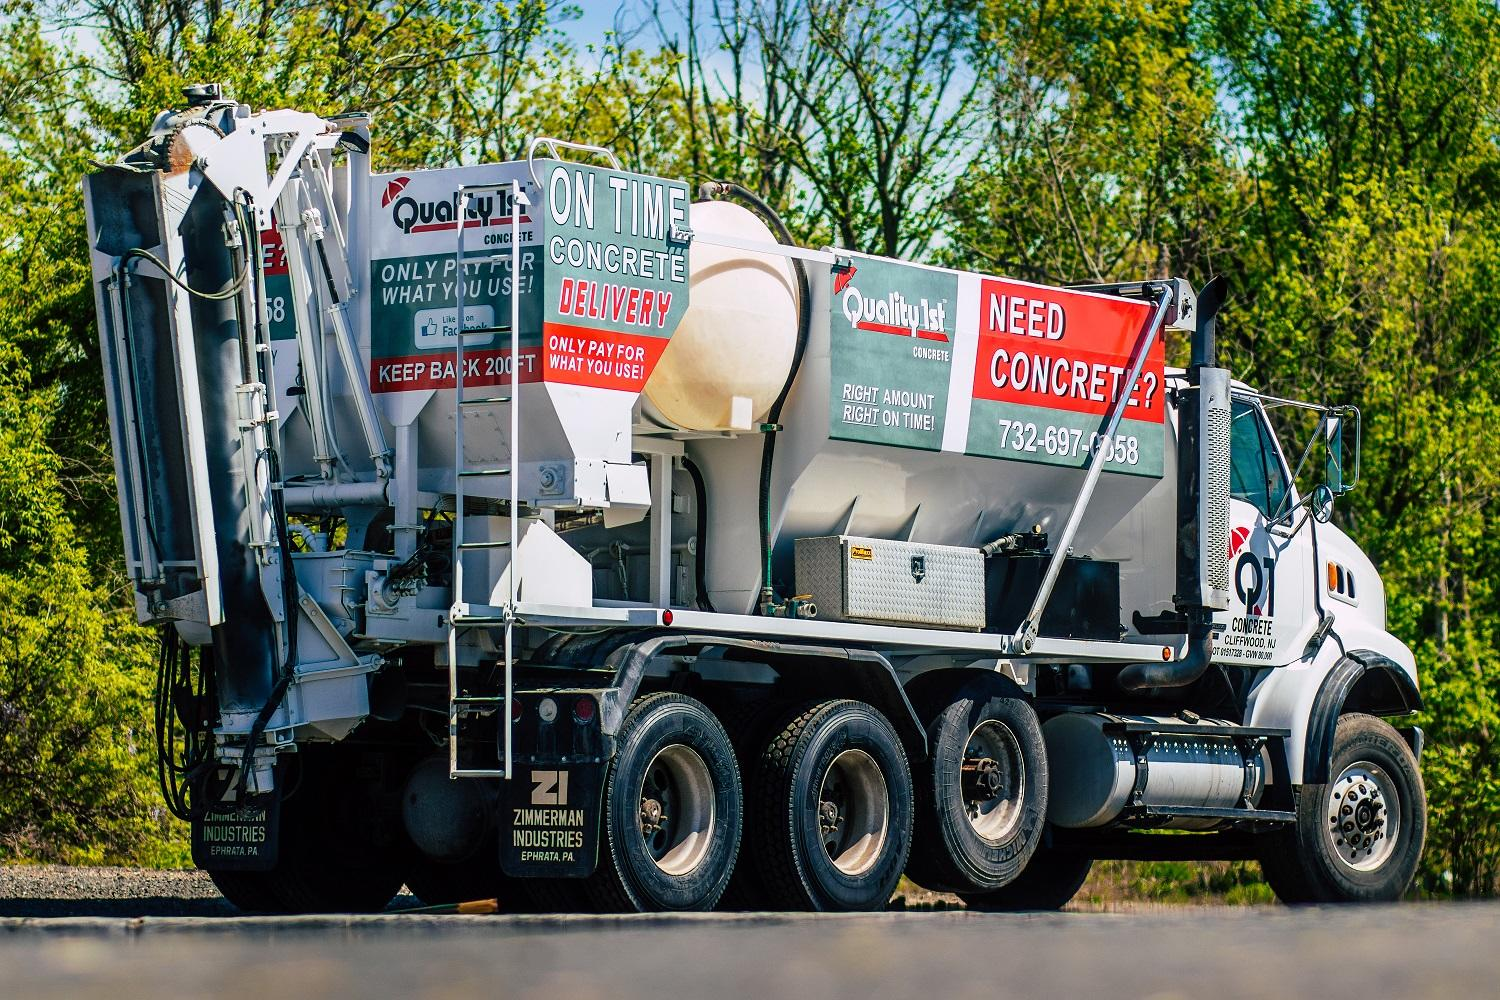 Delivering concrete in New Jersey